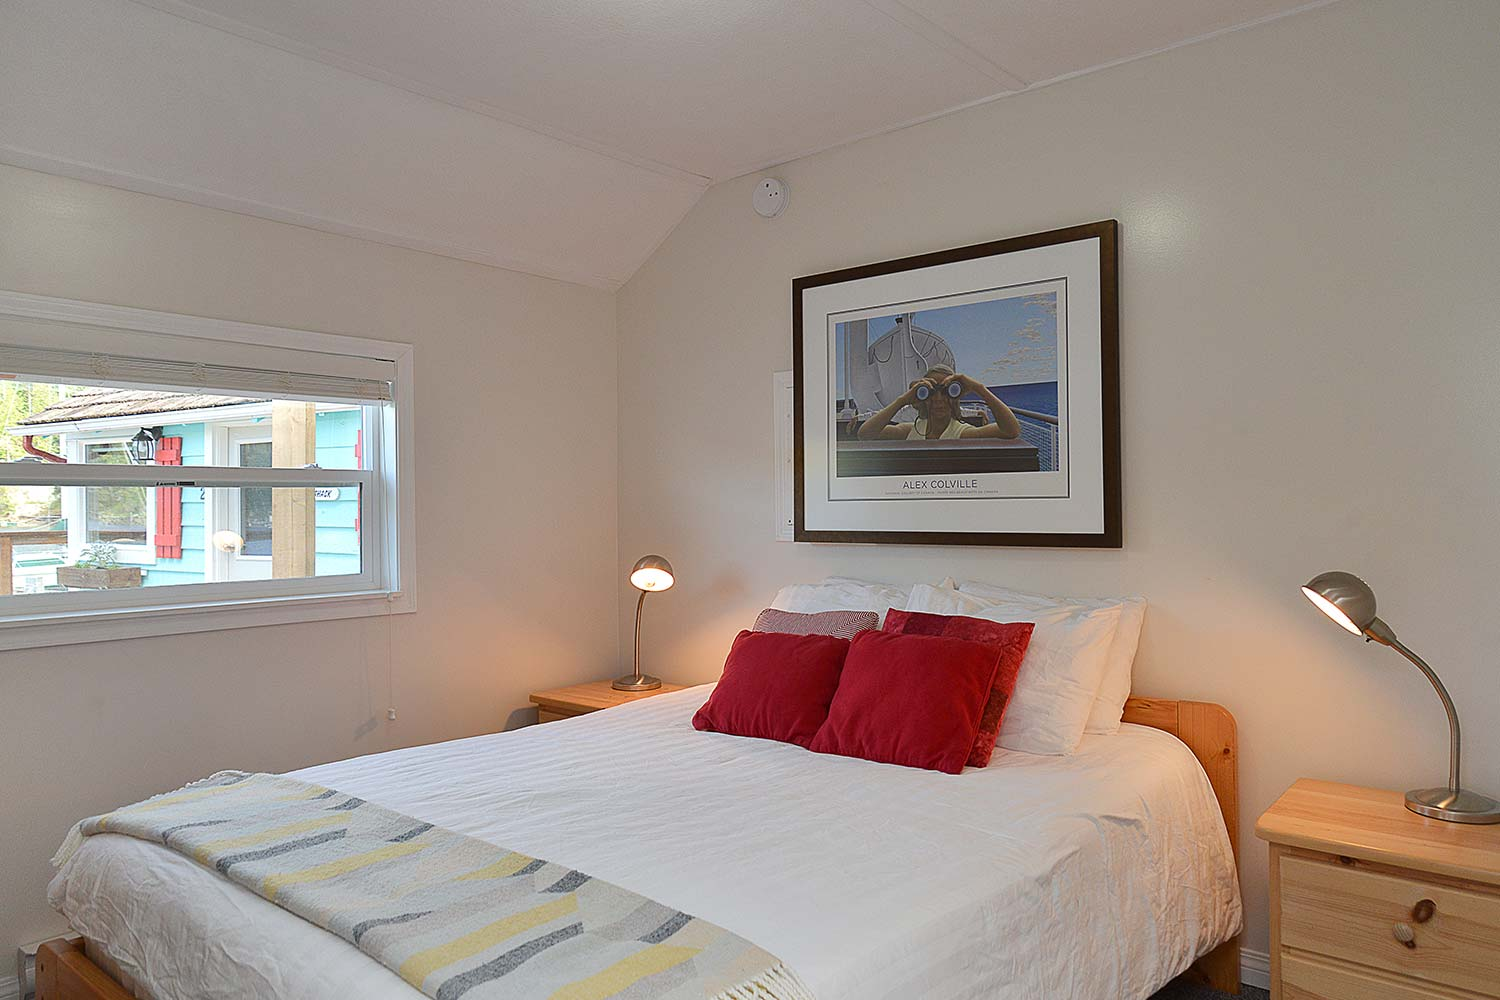 The bedroom of Prawn Palace. This cottage is one of the best places to stay in Sunshine Coast BC if you want ocean views.